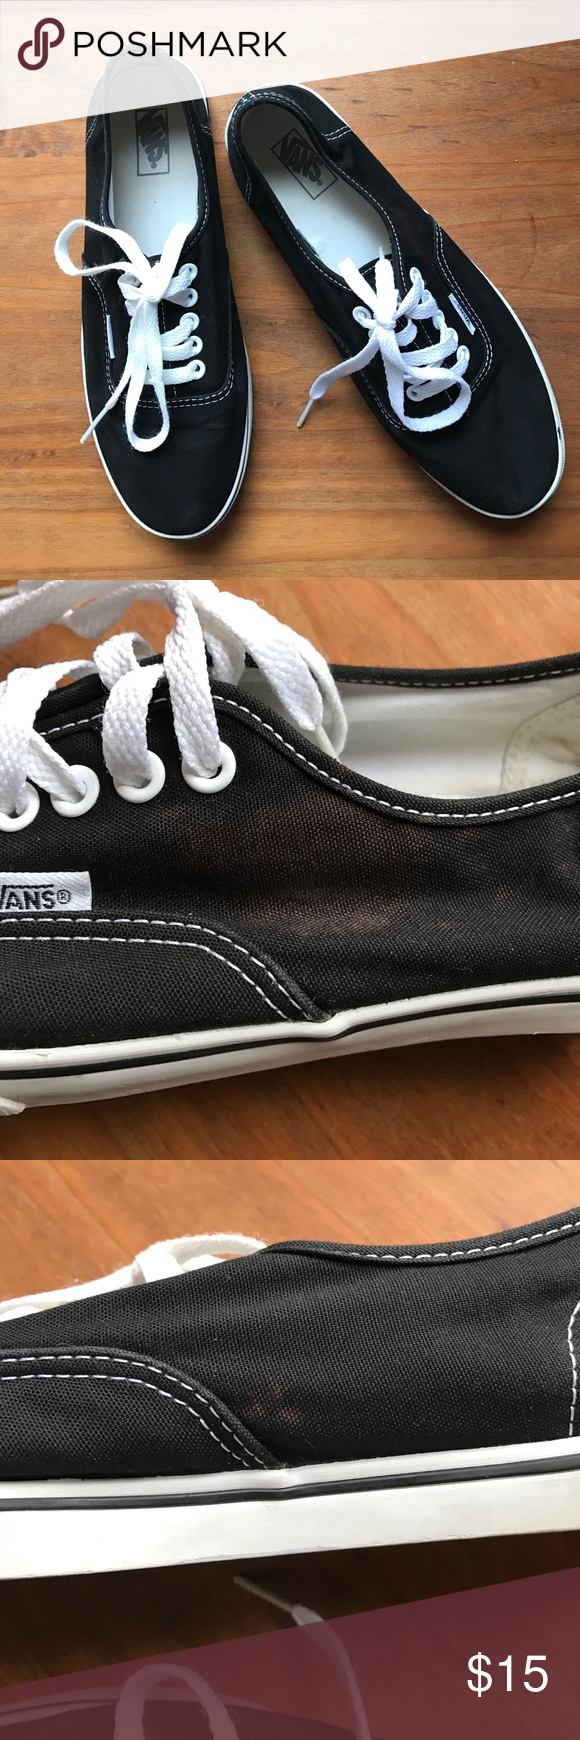 Vans black size 7 Small stains as seen above. The shoe has been very gently used. Vans Shoes Sneakers